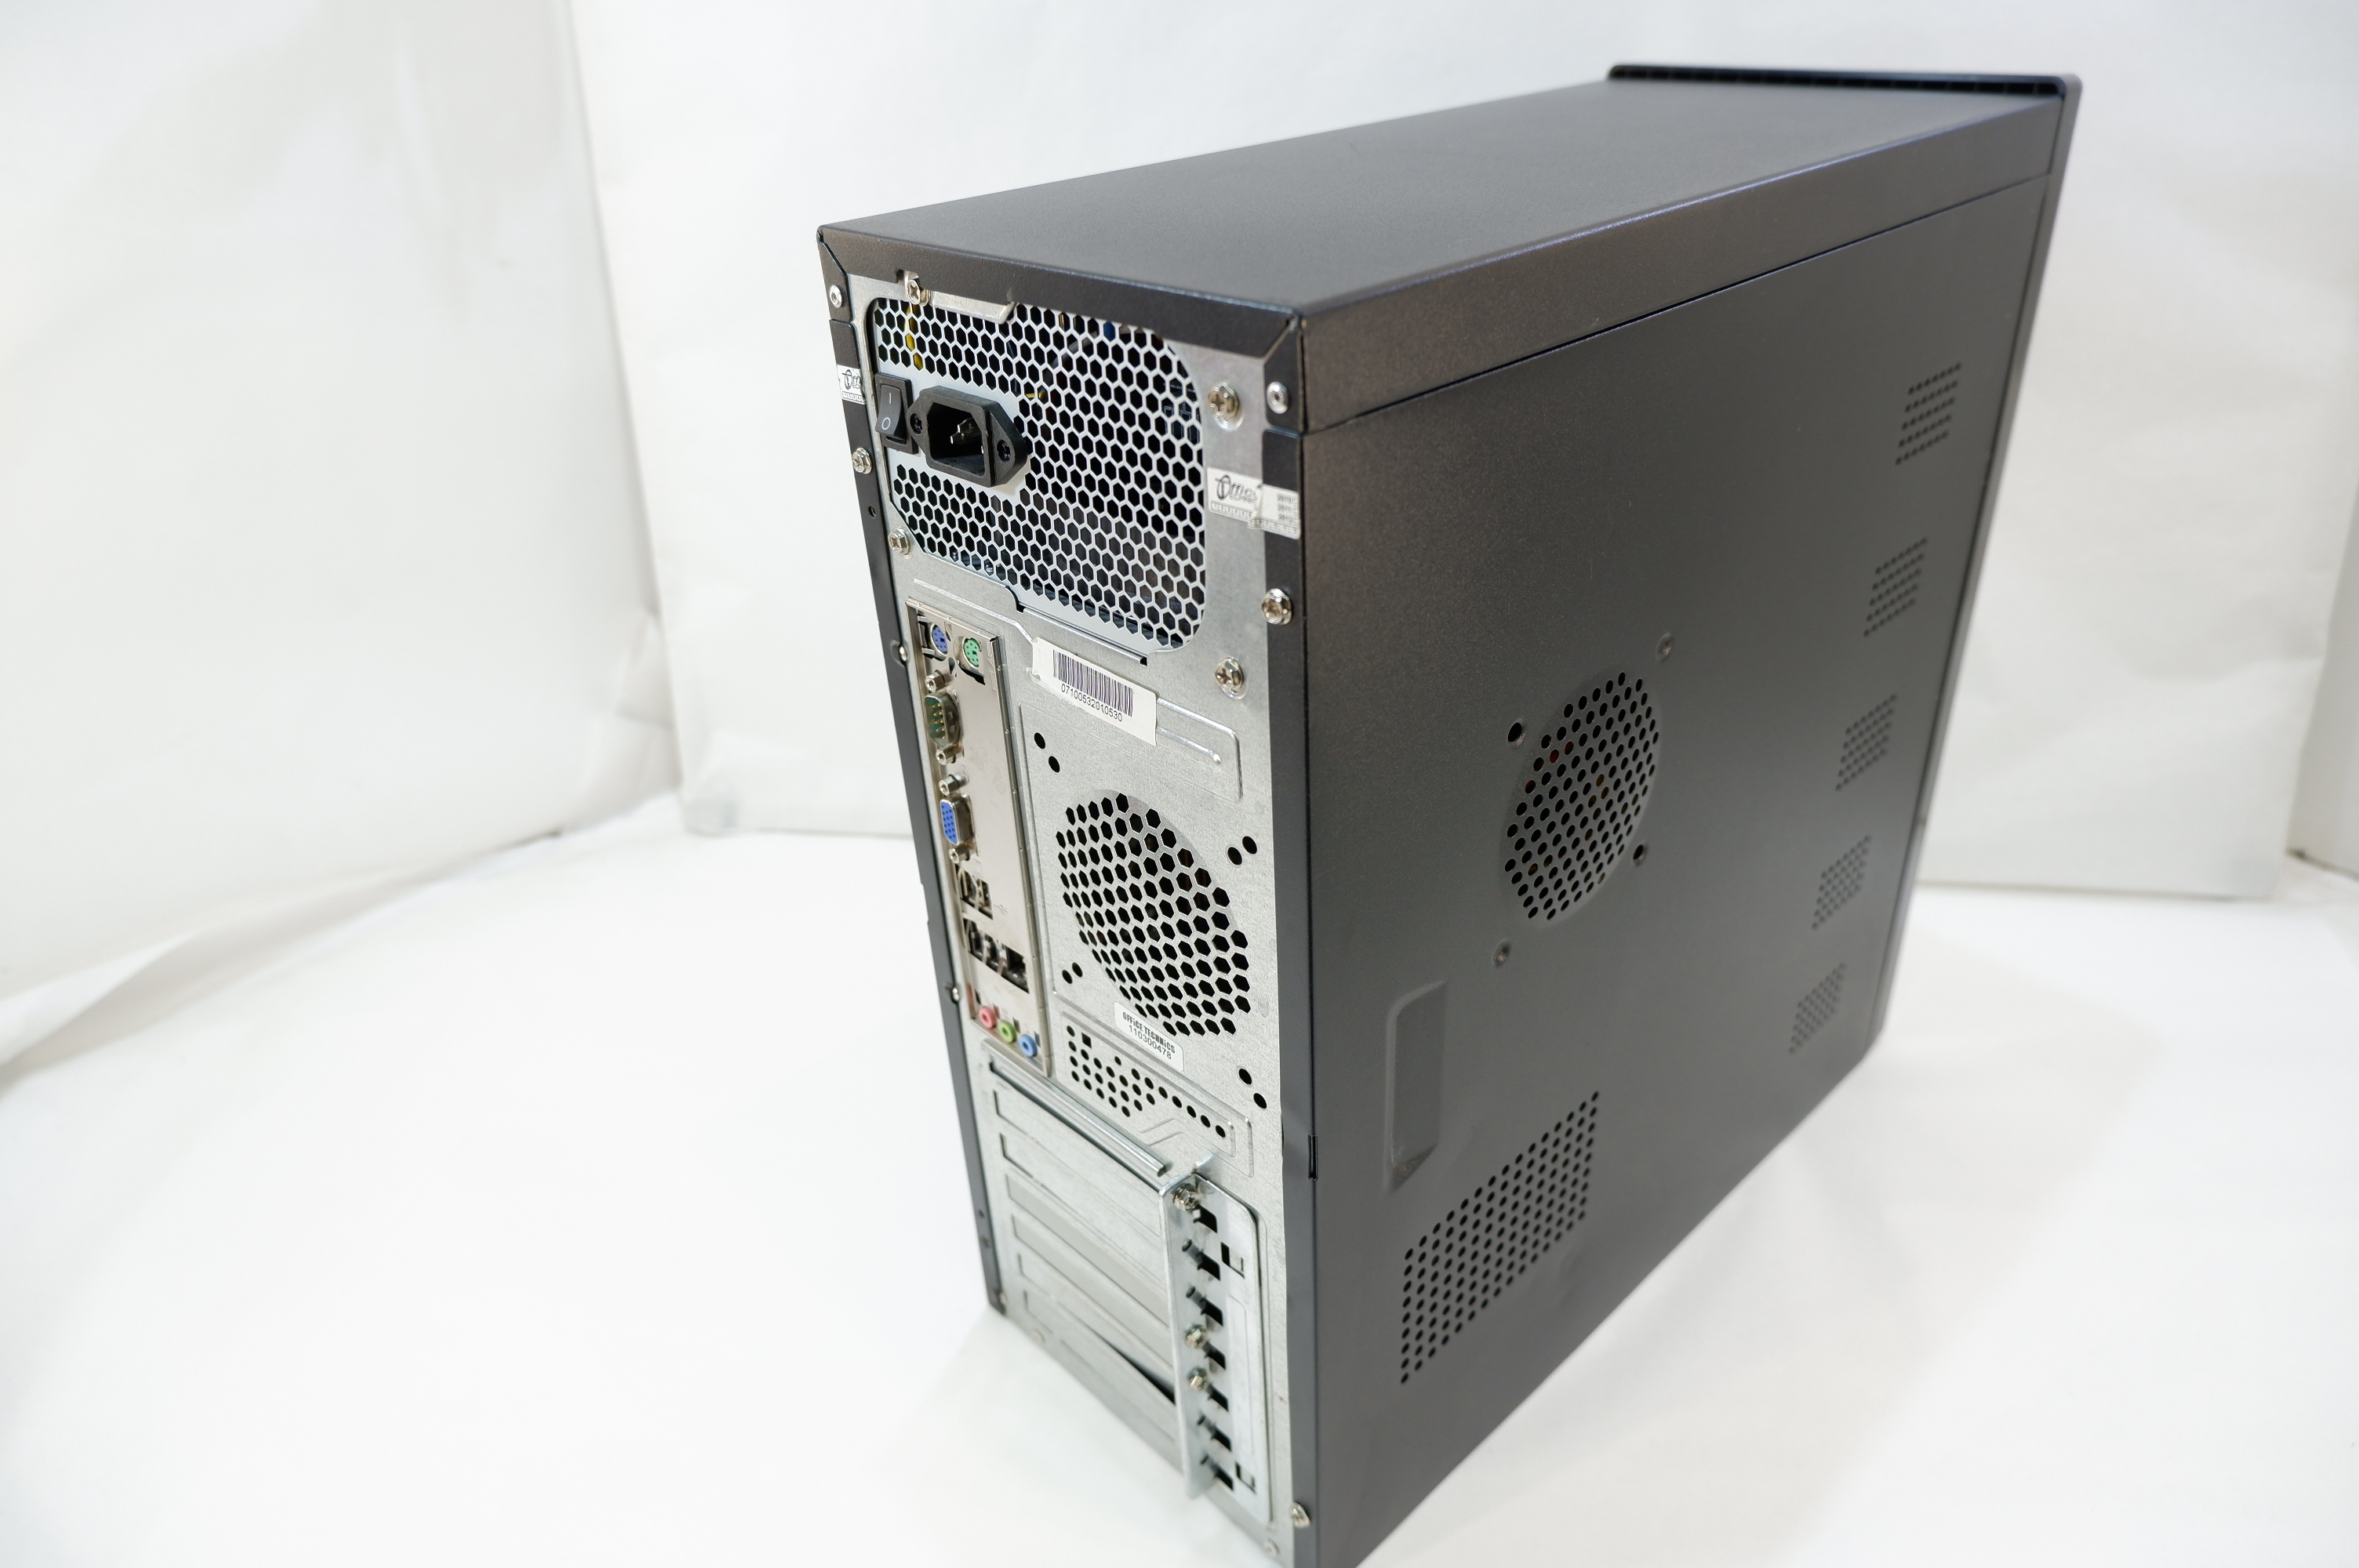 Комп. Intel Core2Duo E7500 2.93Ghz - Pic n 282627